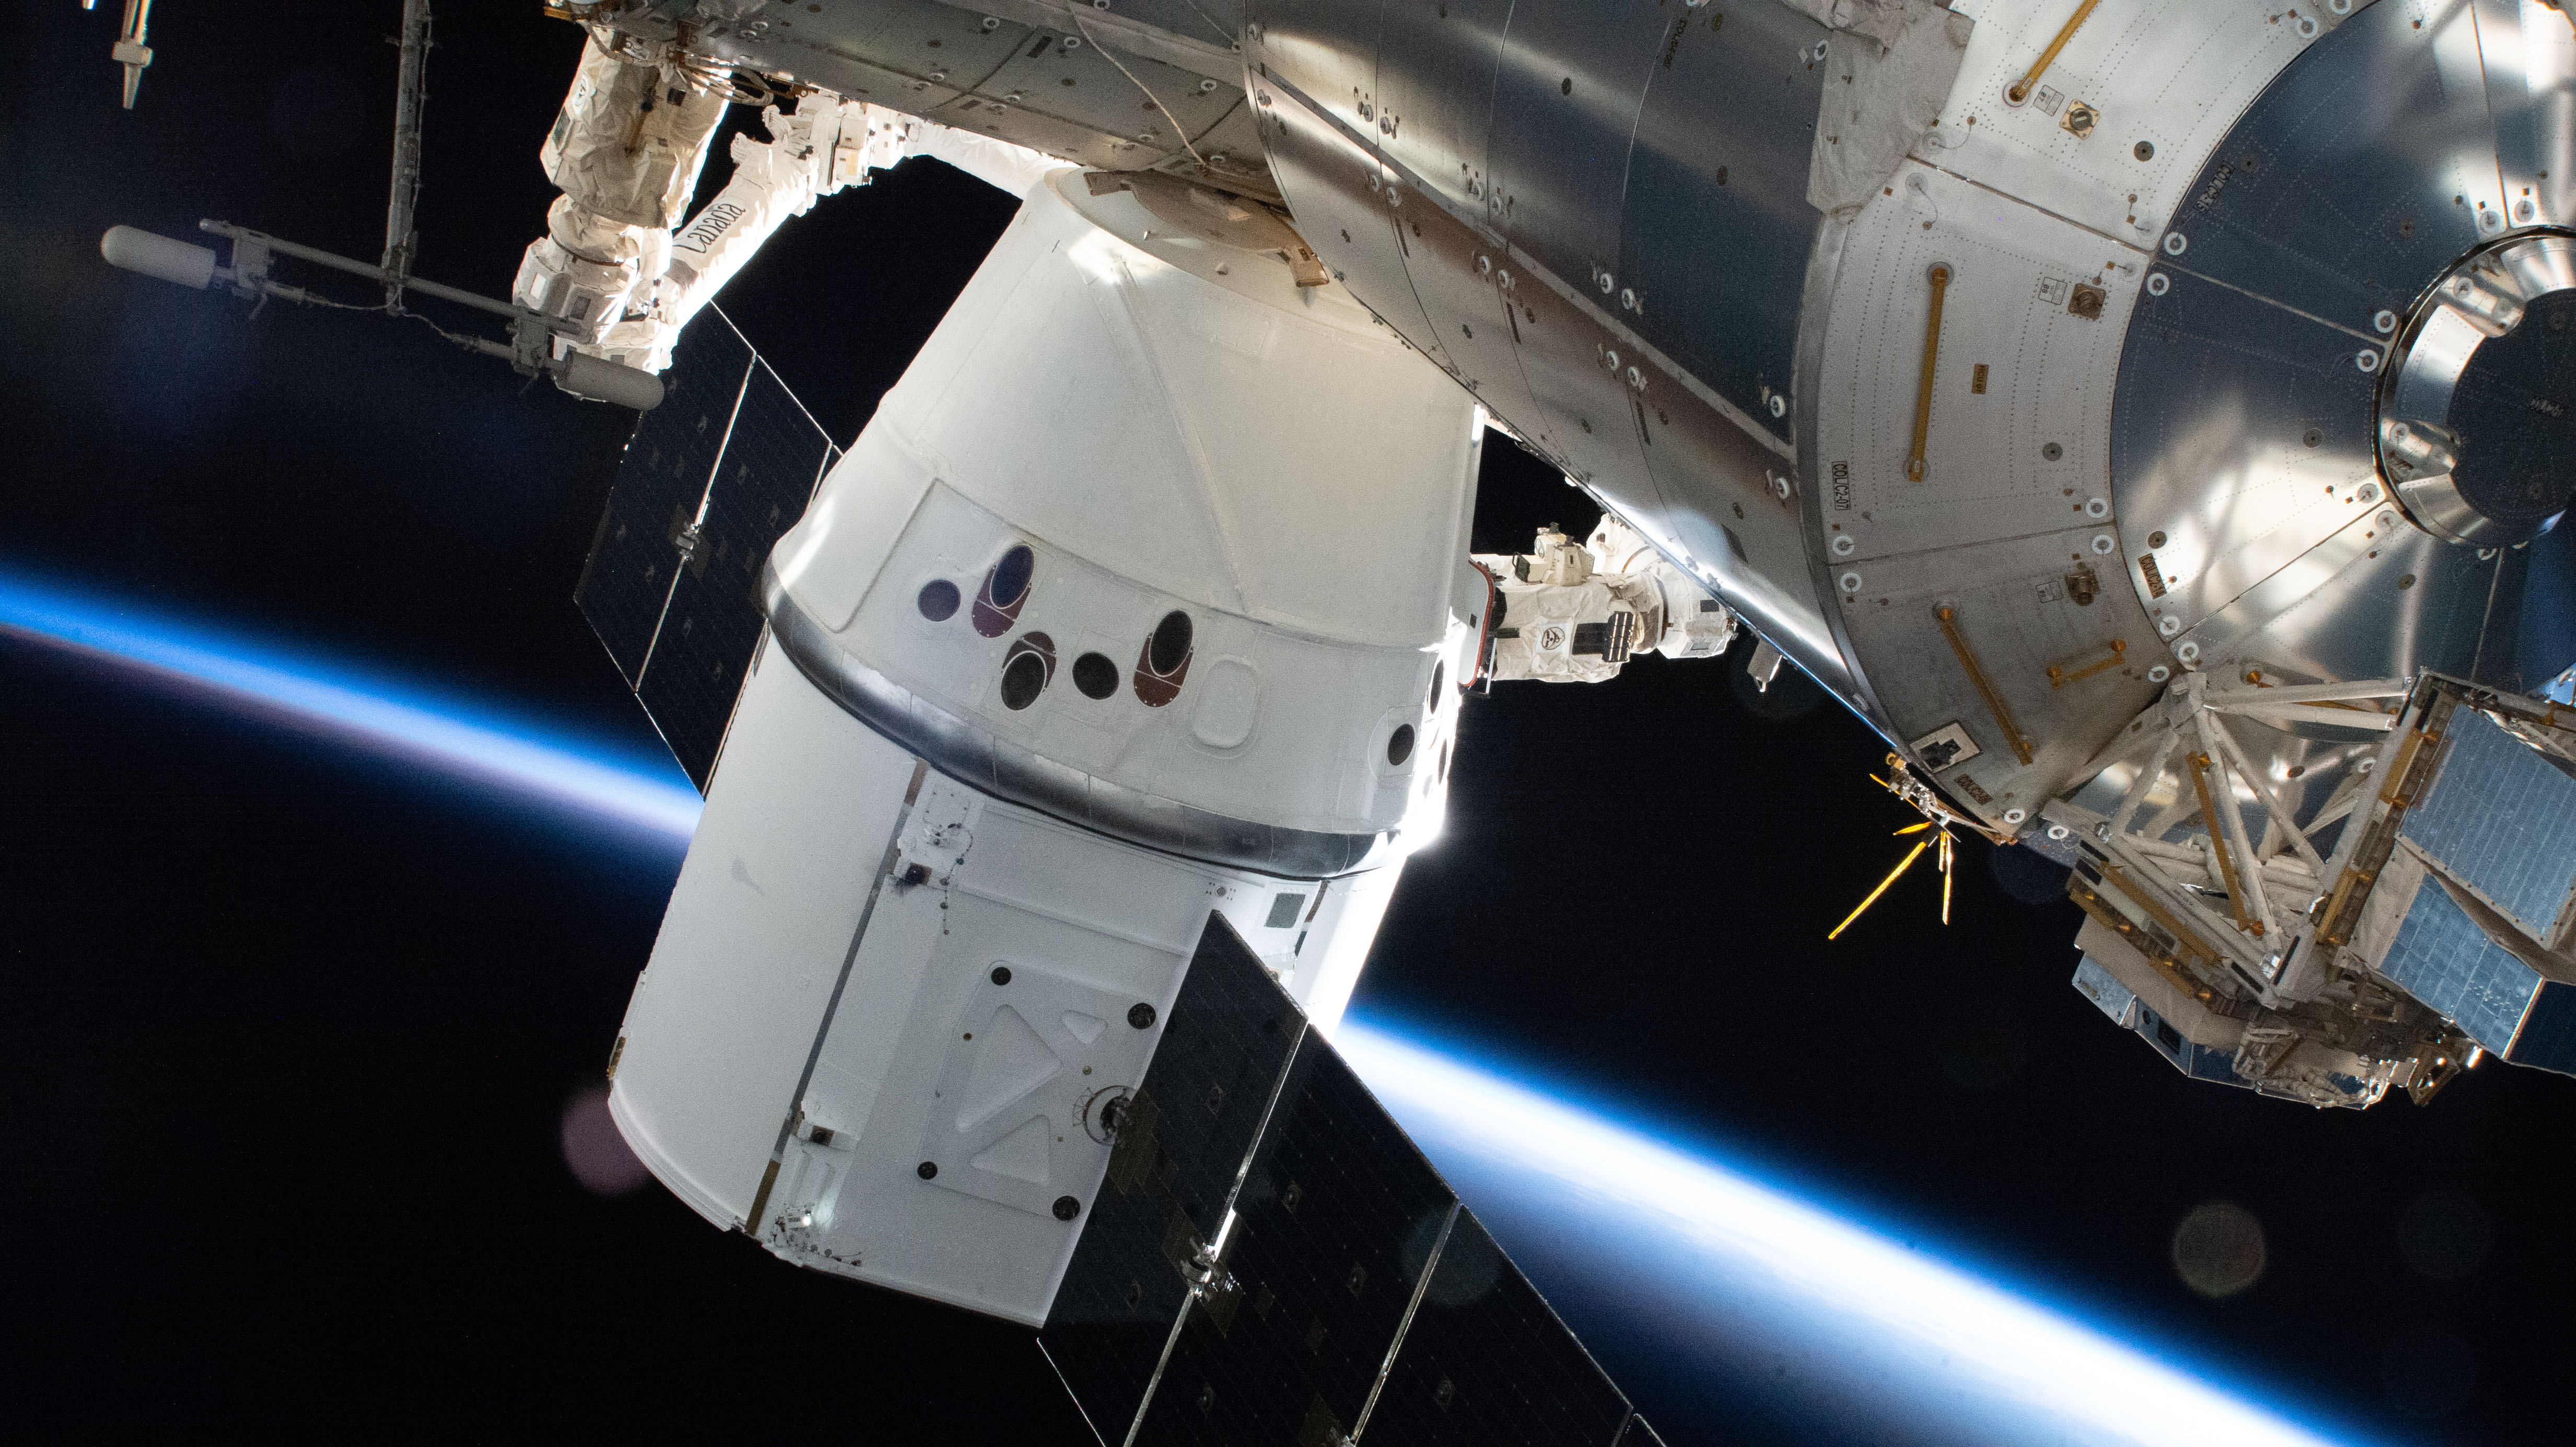 The SpaceX Dragon resupply ship is pictured attached to the Earth-facing port on the International Space Station's Harmony module.